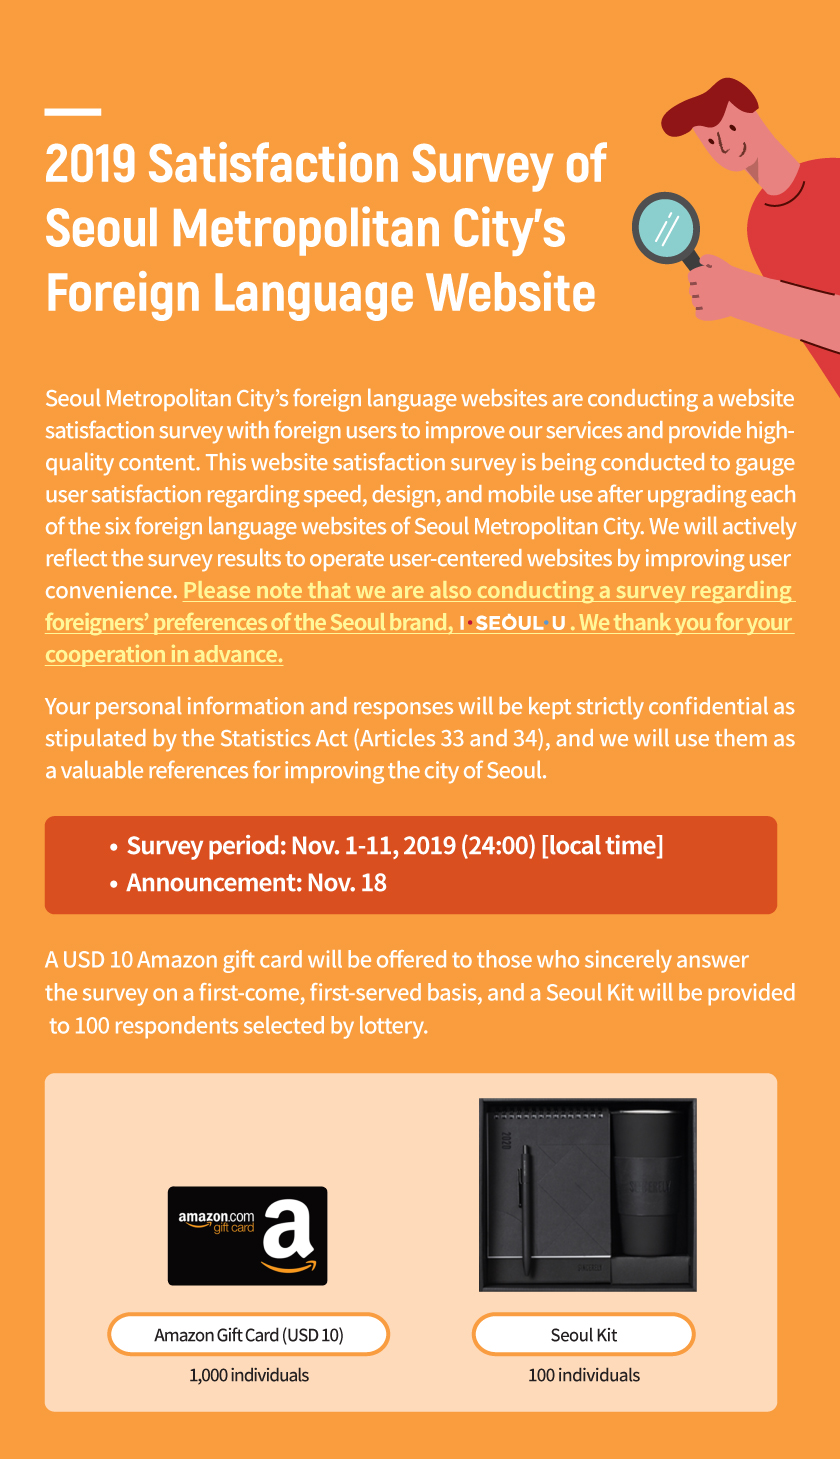 2019 Satisfaction Survey of Seoul Metropolitan City's Foreign Language Website Seoul Metropolitan City's foreign language websites are conducting a website satisfaction survey with foreign users to improve our services and provide high-quality content. This website satisfaction survey is being conducted to gauge user satisfaction regarding speed, design, and mobile use after upgrading each of the six foreign language websites of Seoul Metropolitan City. We will actively reflect the survey results to operate user-centered websites by improving user convenience. Please note that we are also conducting a survey regarding foreigners' preferences of the Seoul brand, I·SEOUL·U. We thank you for your cooperation in advance.  Your personal information and responses will be kept strictly confidential as stipulated by the Statistics Act (Articles 33 and 34), and we will use them as a valuable references for improving the city of Seoul.   Survey period: Nov. 1-11, 2019 (24:00) [local time]  A USD 10 Amazon gift card will be offered to those who sincerely answer the survey on a first-come, first-served basis, and a Seoul Kit will be provided to 100 respondents selected by lottery.